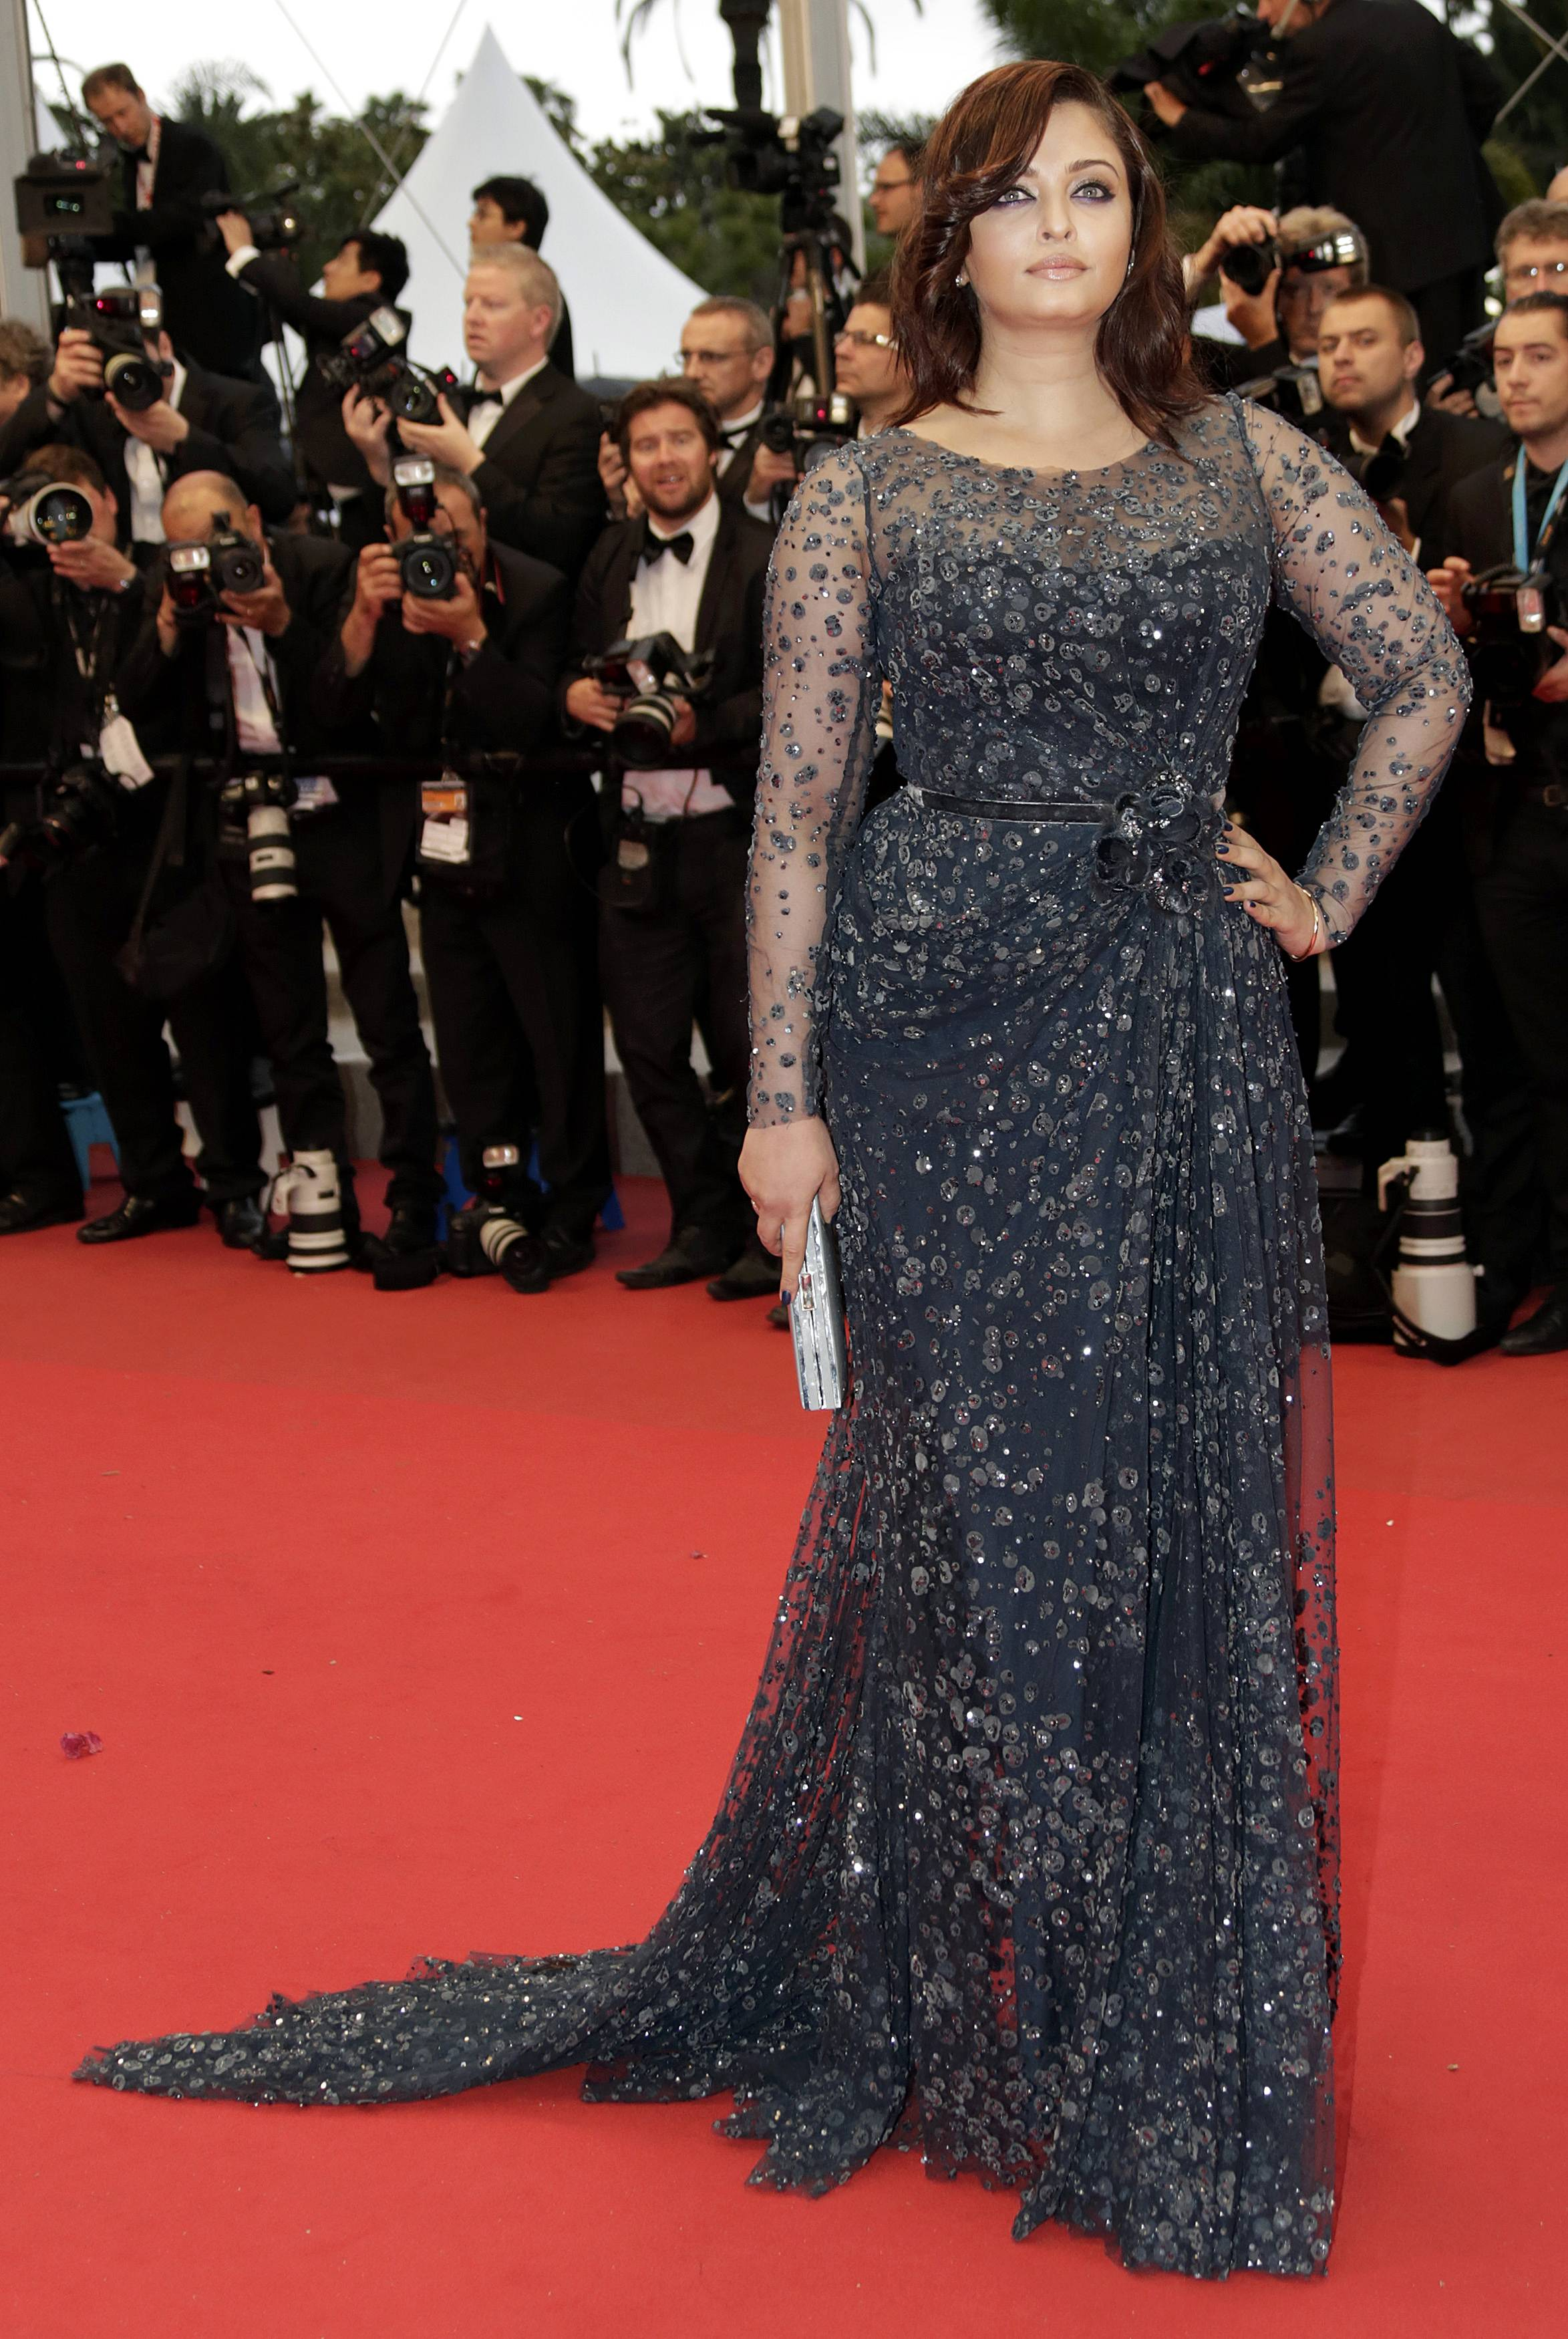 """Actress Aishwarya Rai arrives on the red carpet ahead of the screening of the film """"Cosmopolis"""" in competition at the 65th Cannes Film Festival May 25, 2012. REUTERS/Eric Gaillard (FRANCE - Tags: ENTERTAINMENT)"""